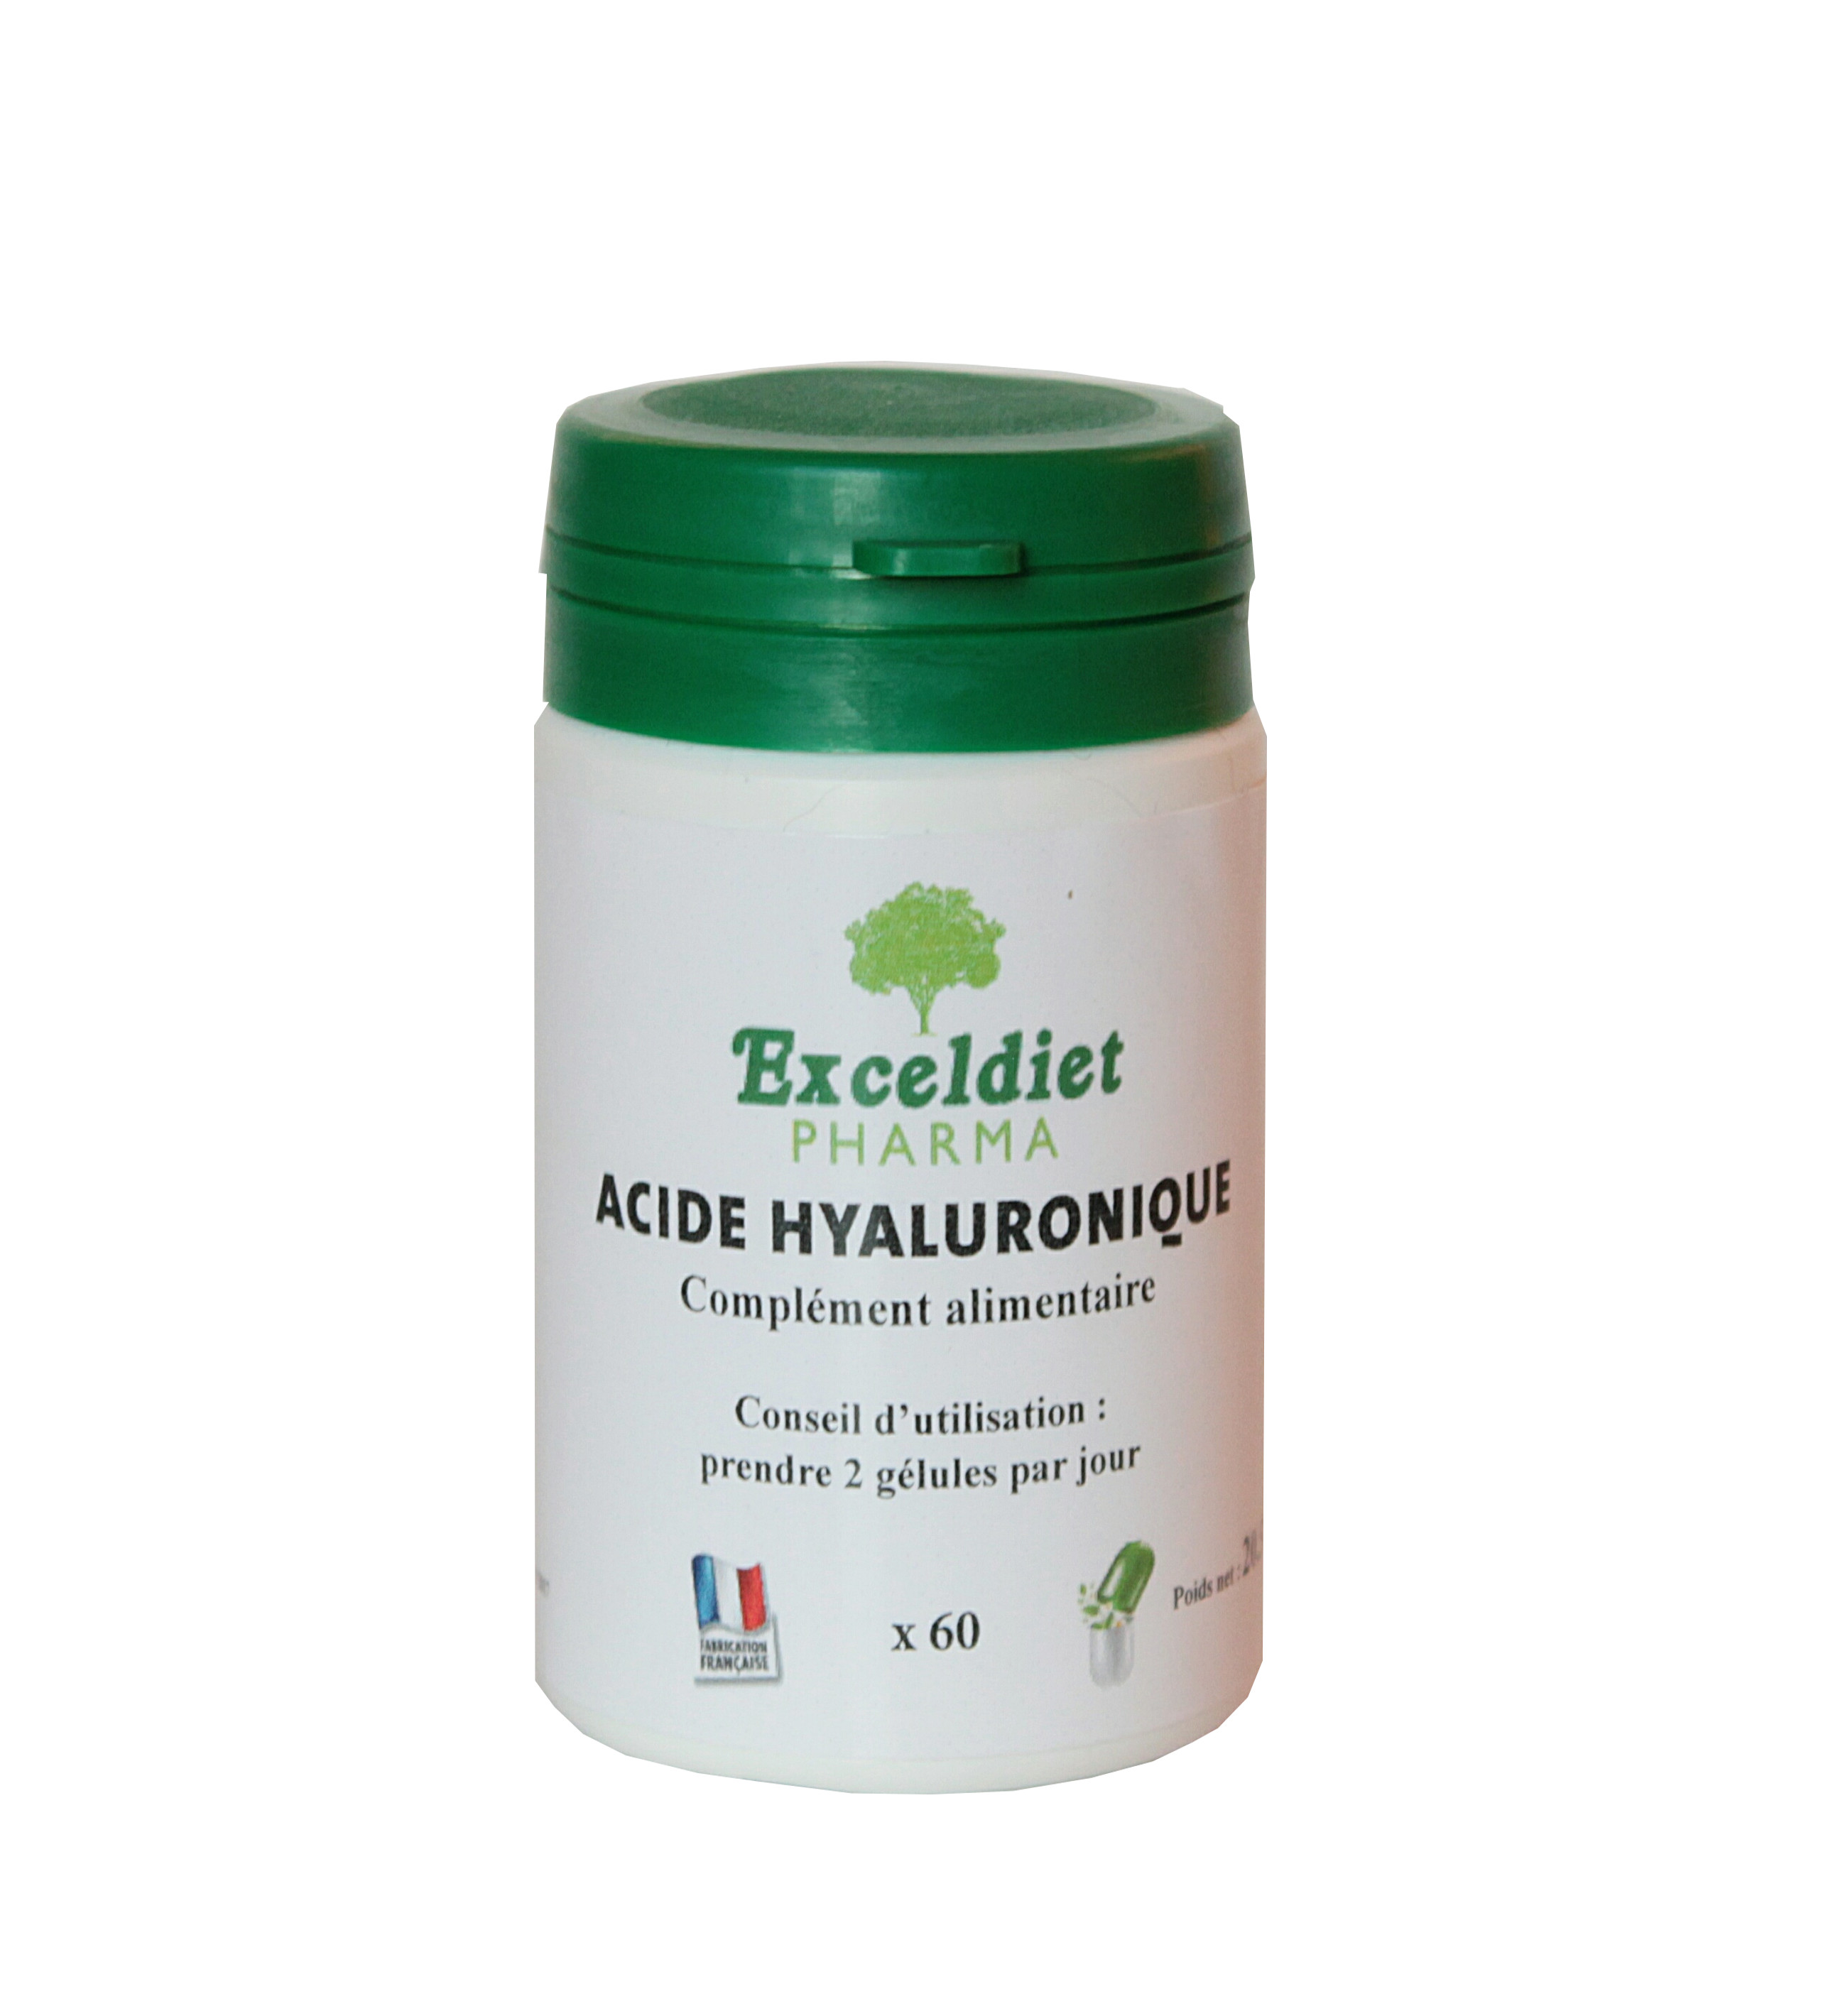 acide hyaluronique 60 g lules soin visage articulation exceldiet pharma. Black Bedroom Furniture Sets. Home Design Ideas